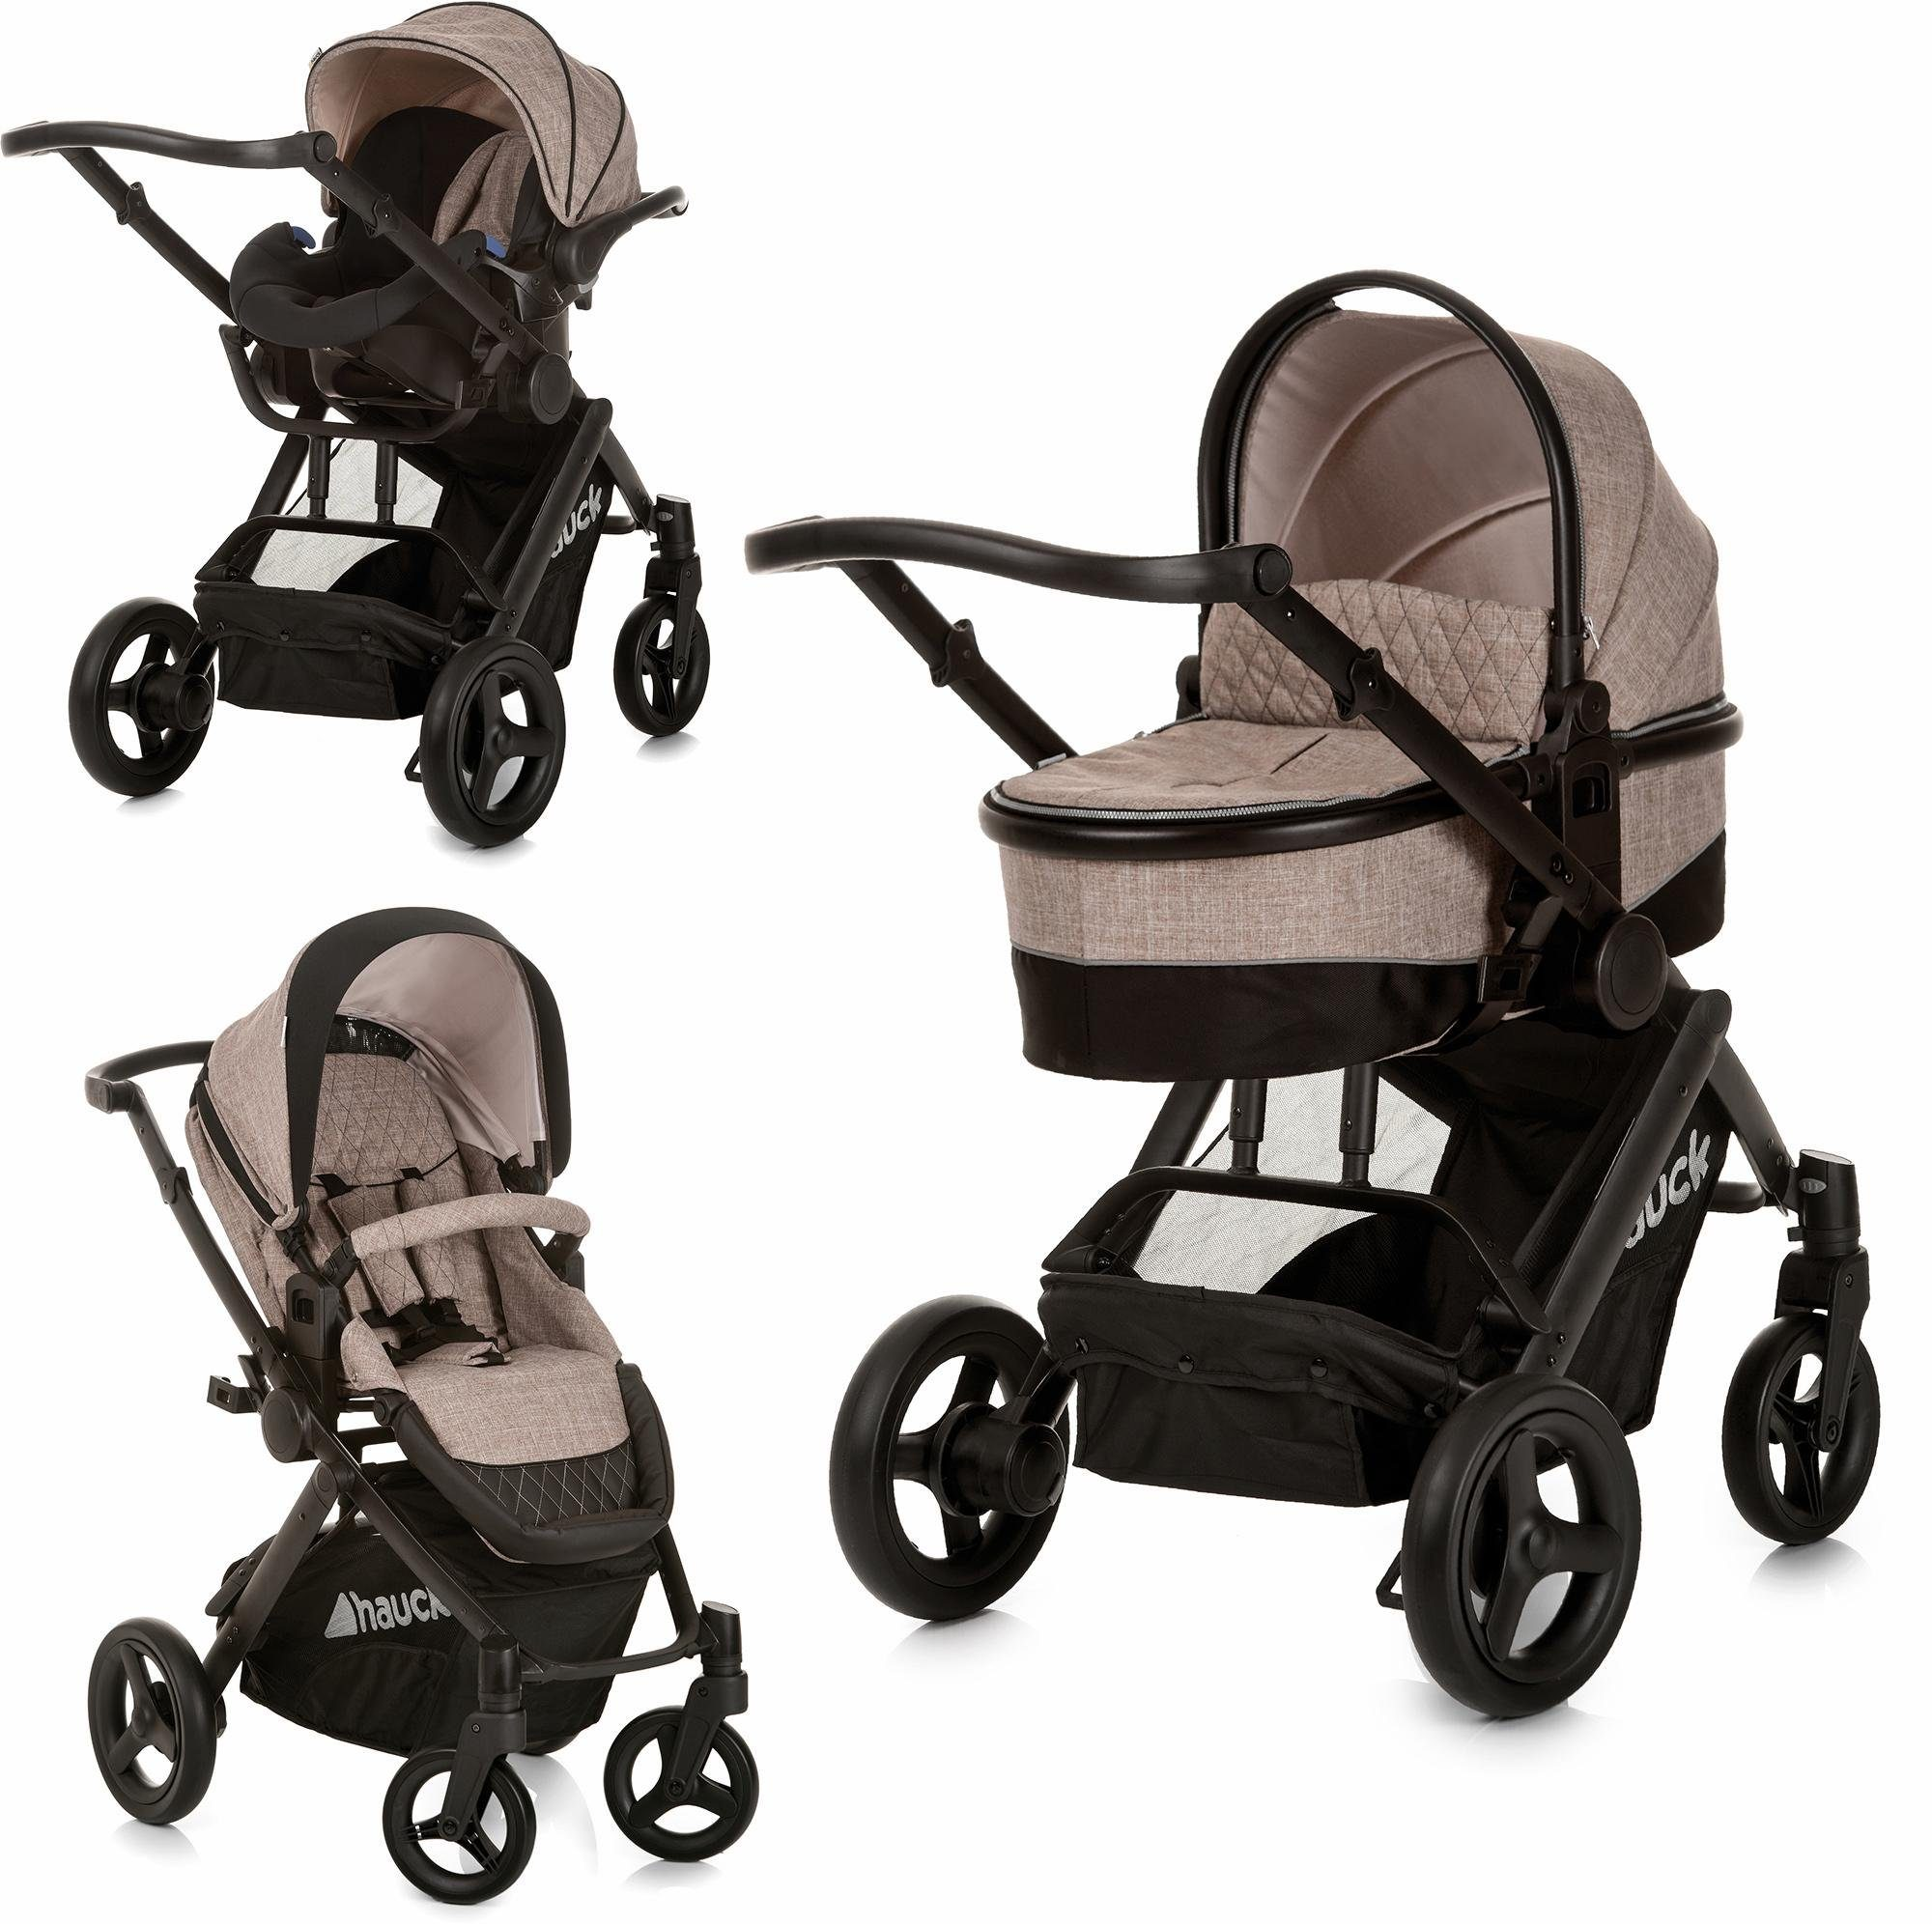 Babyschale Auto Sale Hauck Fun For Kids Kombi Kinderwagen Inkl Babyschale